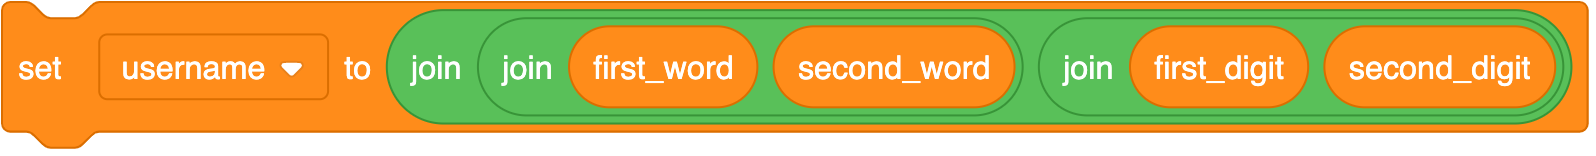 Set 'username' to block with three 'join' blocks for the 'first_word', 'second_word', 'first_digit', and 'second_digit'